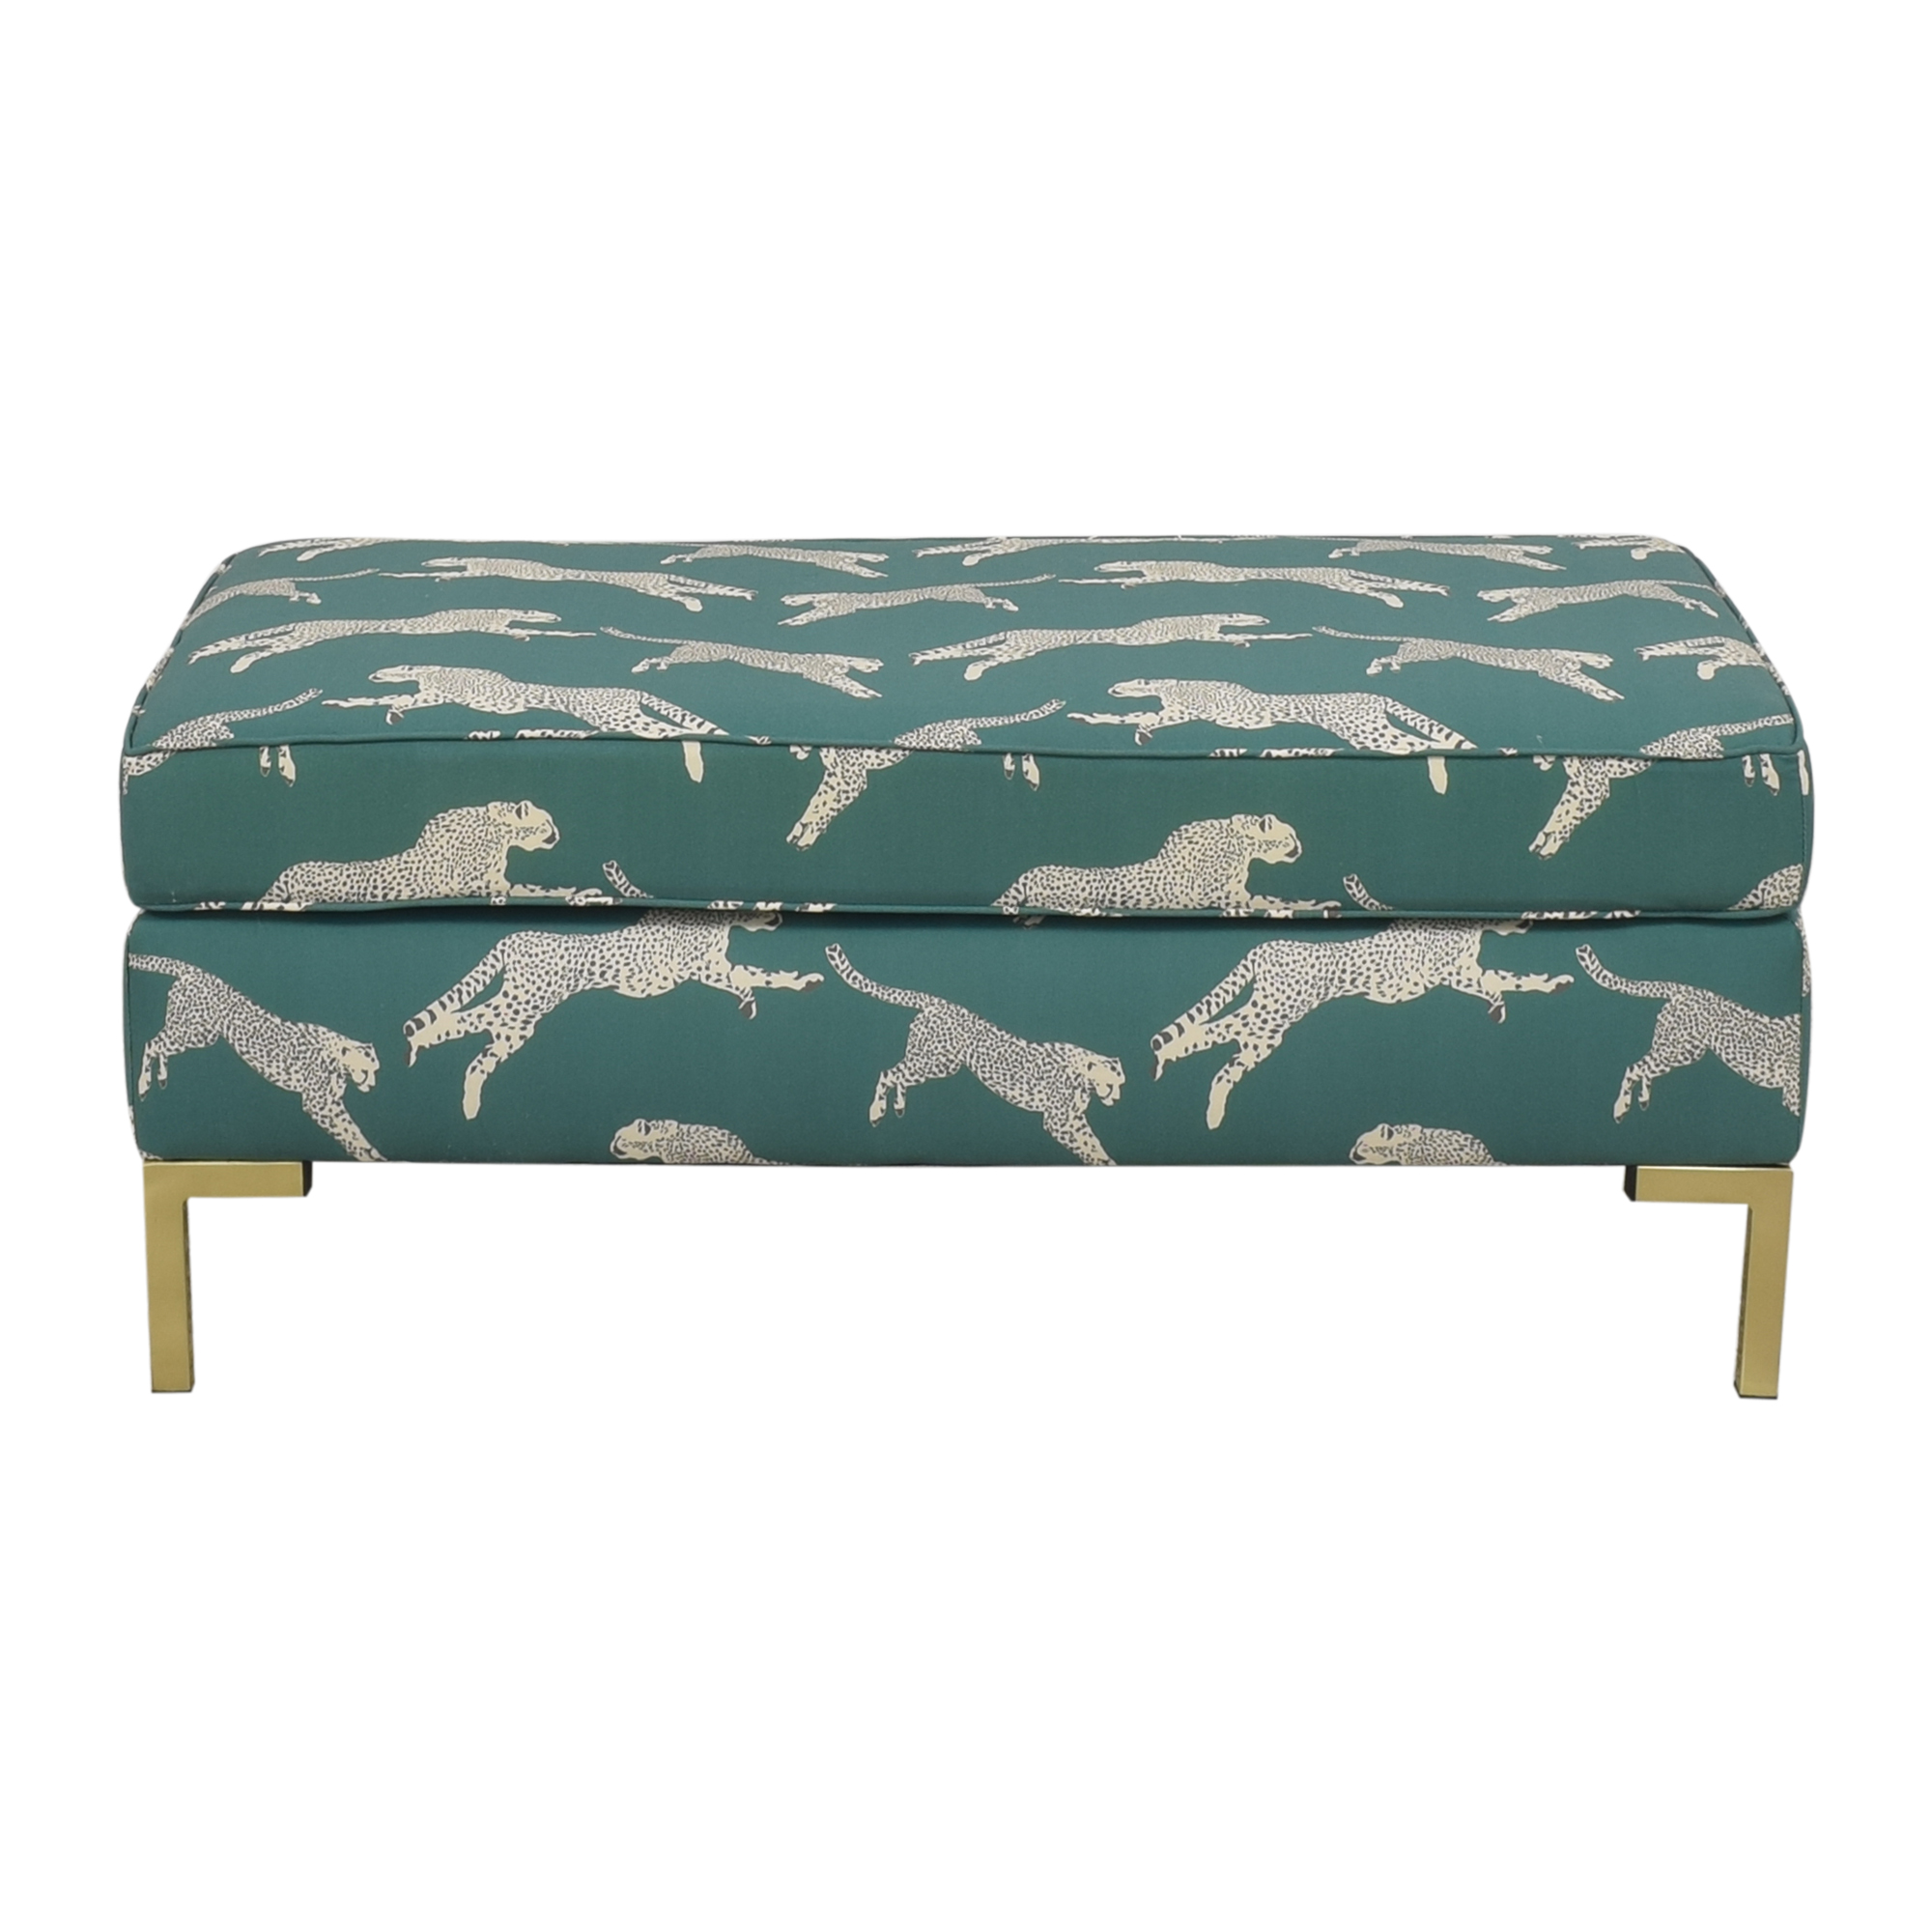 The Inside The Inside Polo Green Cheetah Modern Bench coupon